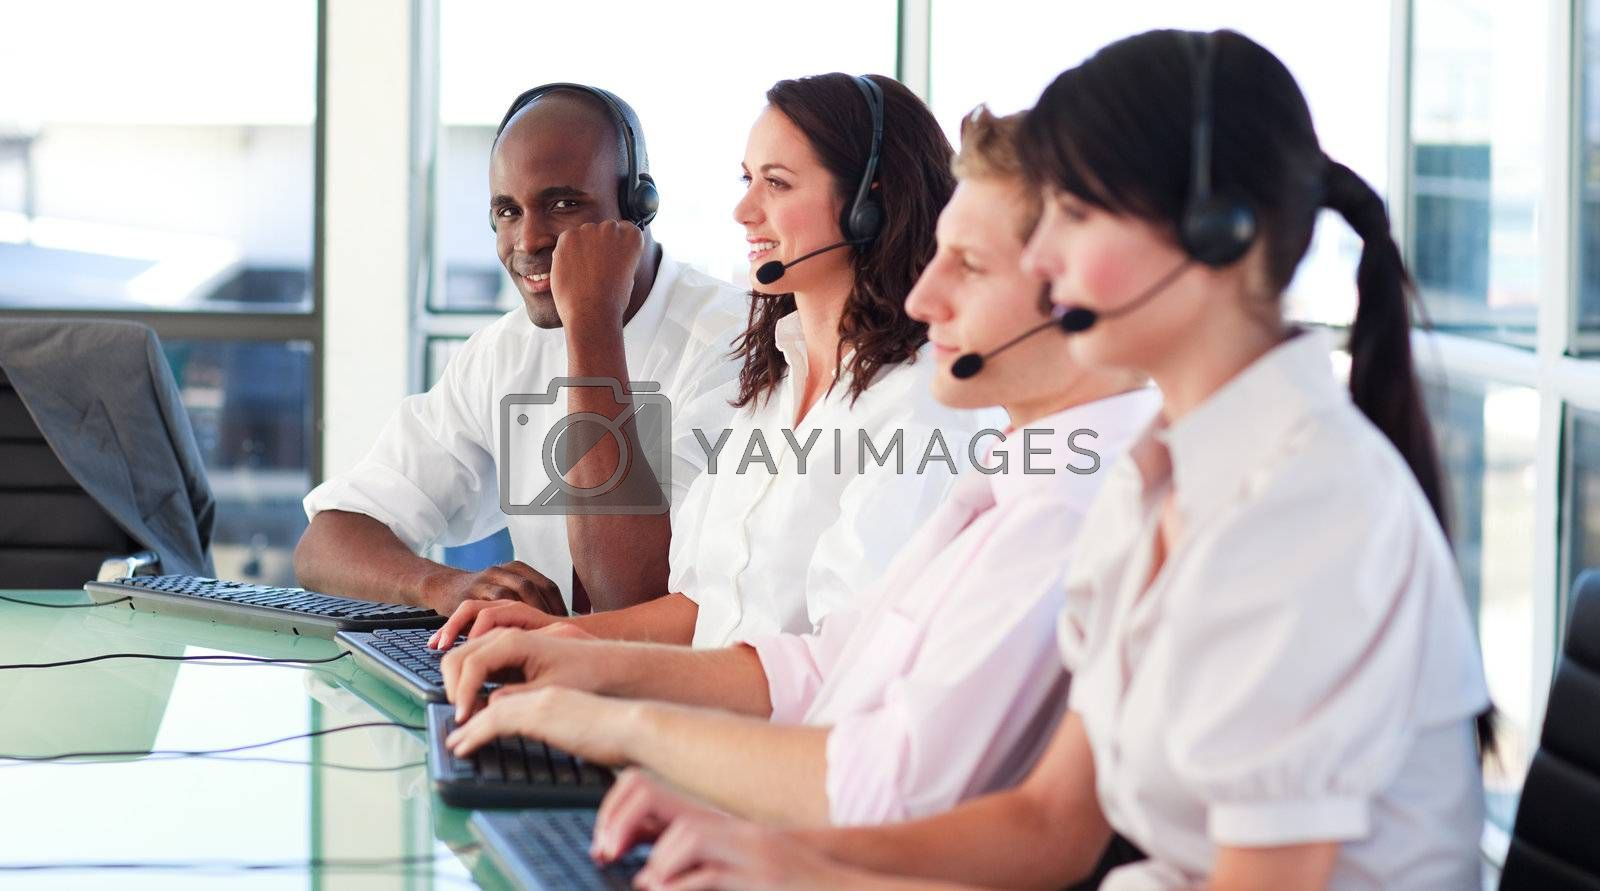 Business employees in a call center